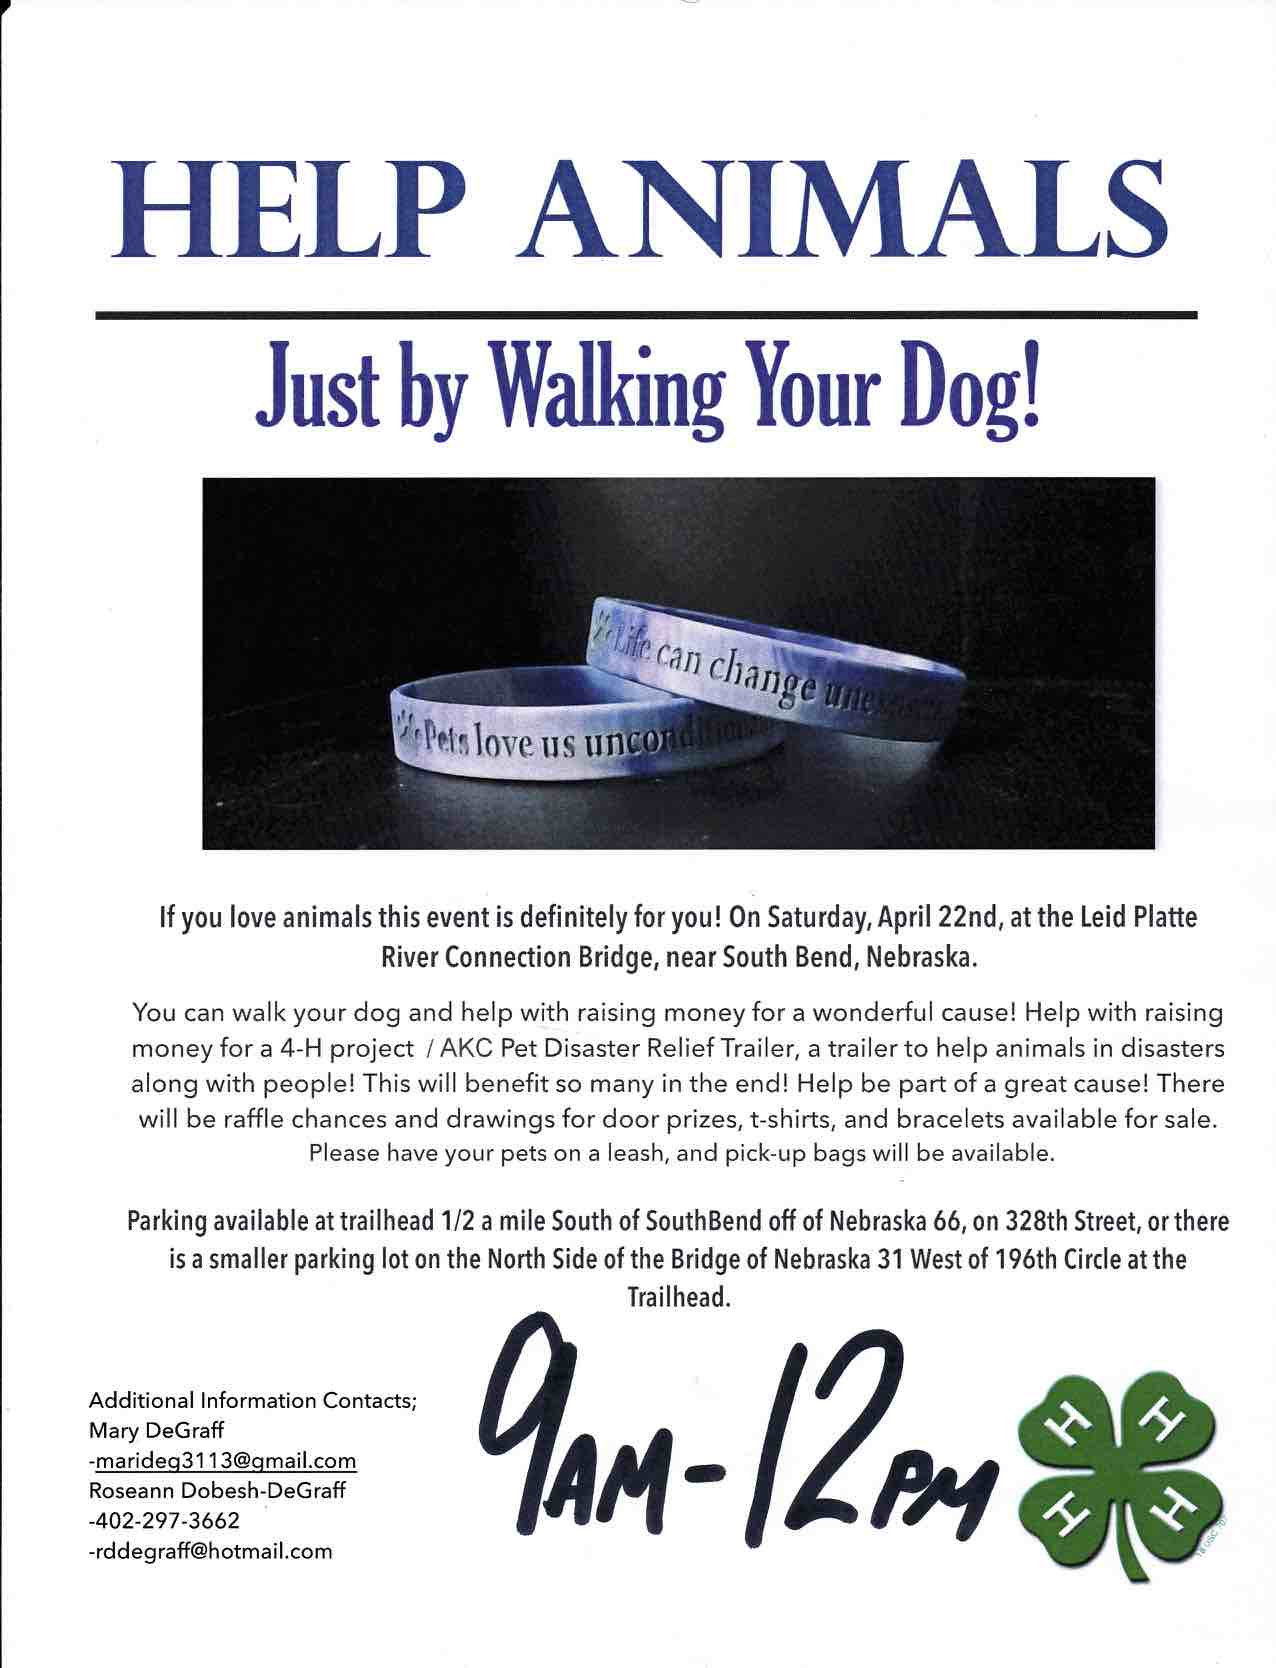 Dog Walk Fundraiser Flyer